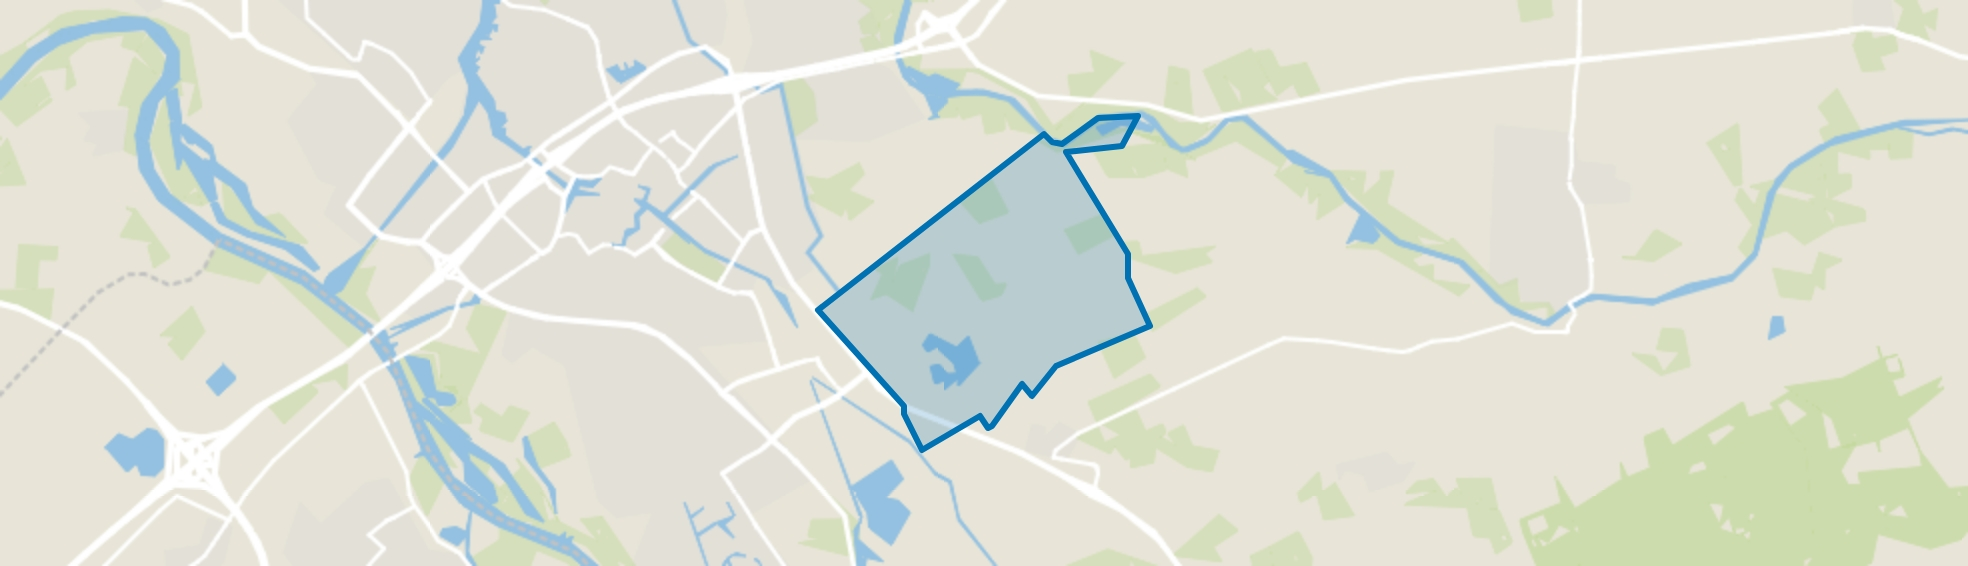 Herfte, Zwolle map